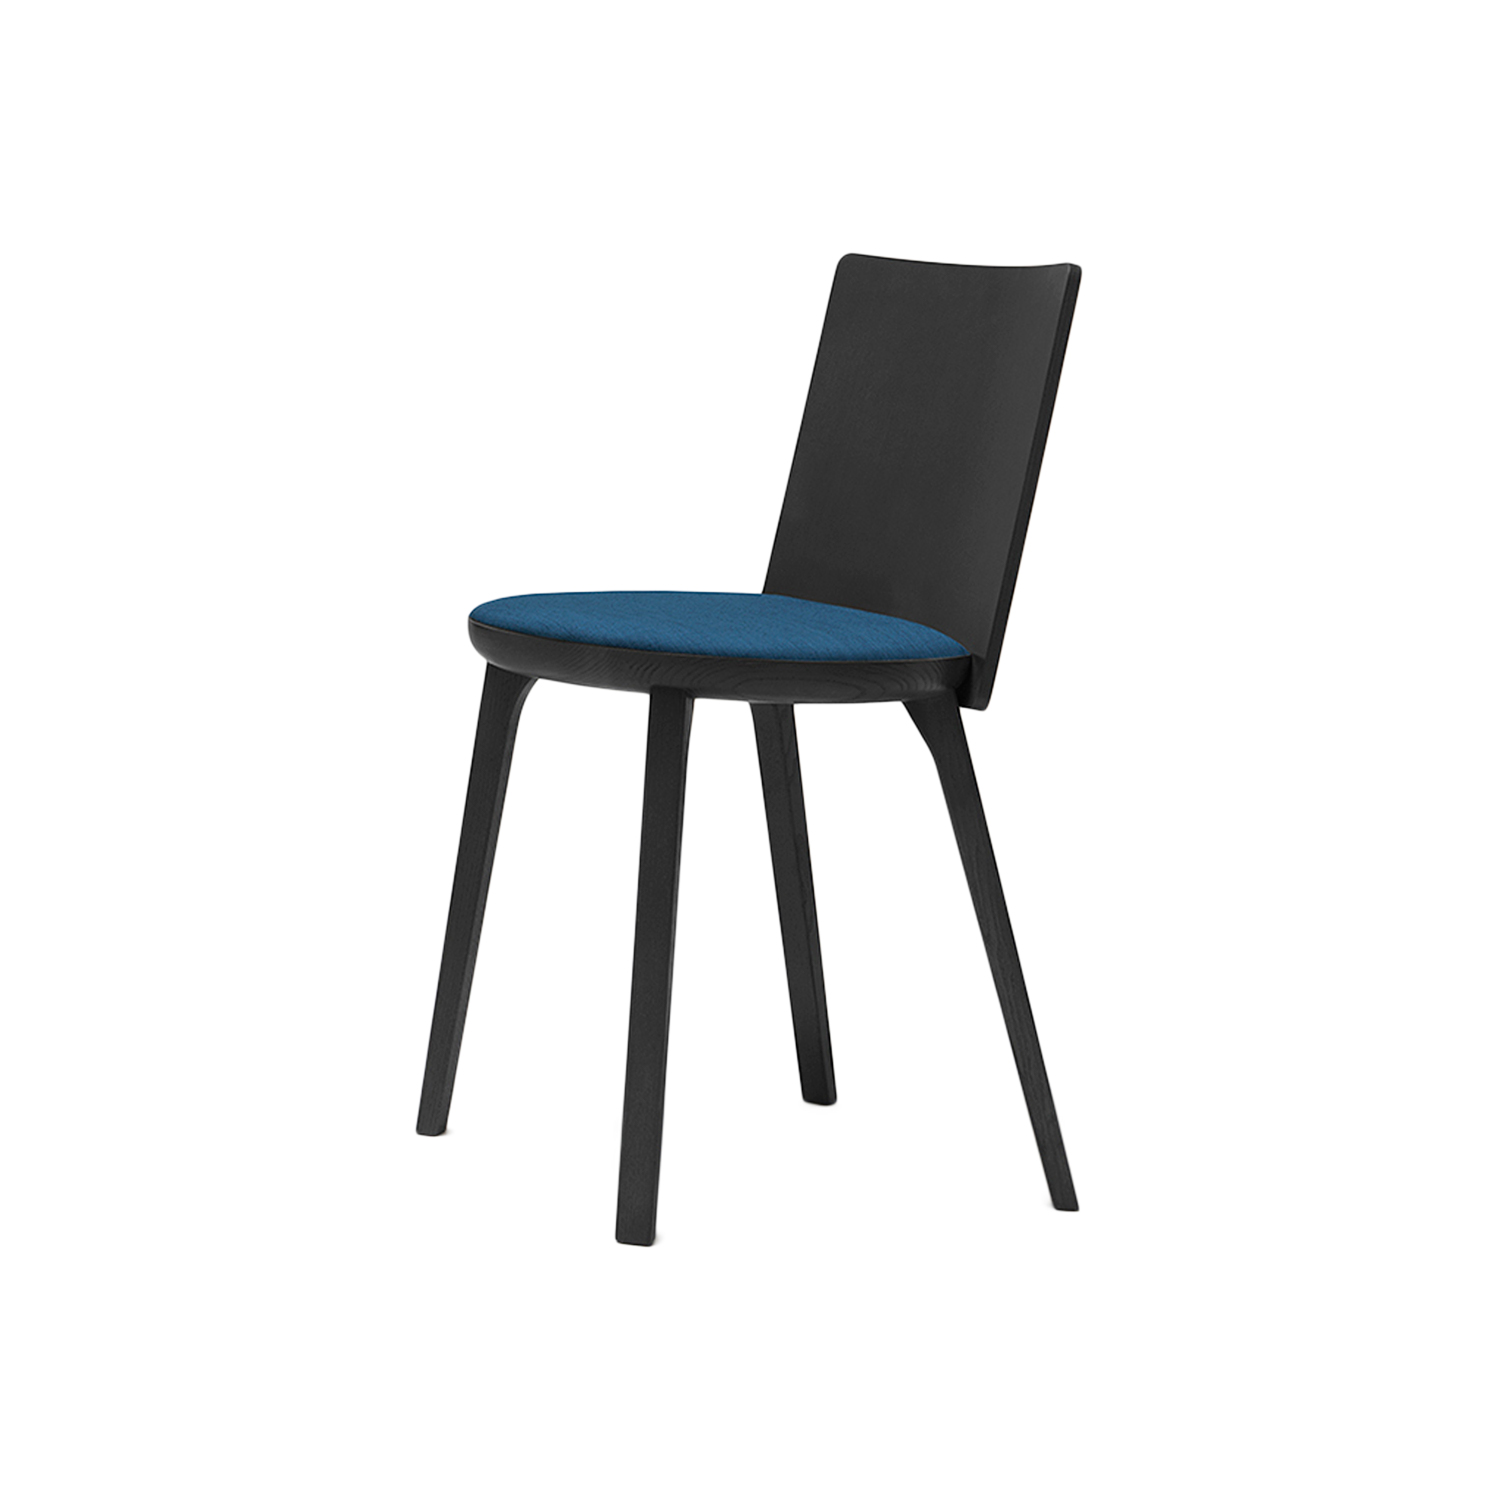 Riquadra Dining Chair - <p>Riquadra dining chair is part of a family of seating with essential geometric lines. The circular seat and square back have the exact same area, and intersect to create an opposition of forms, where one geometric figure or the other becomes predominant depending on the vantage point. </p>